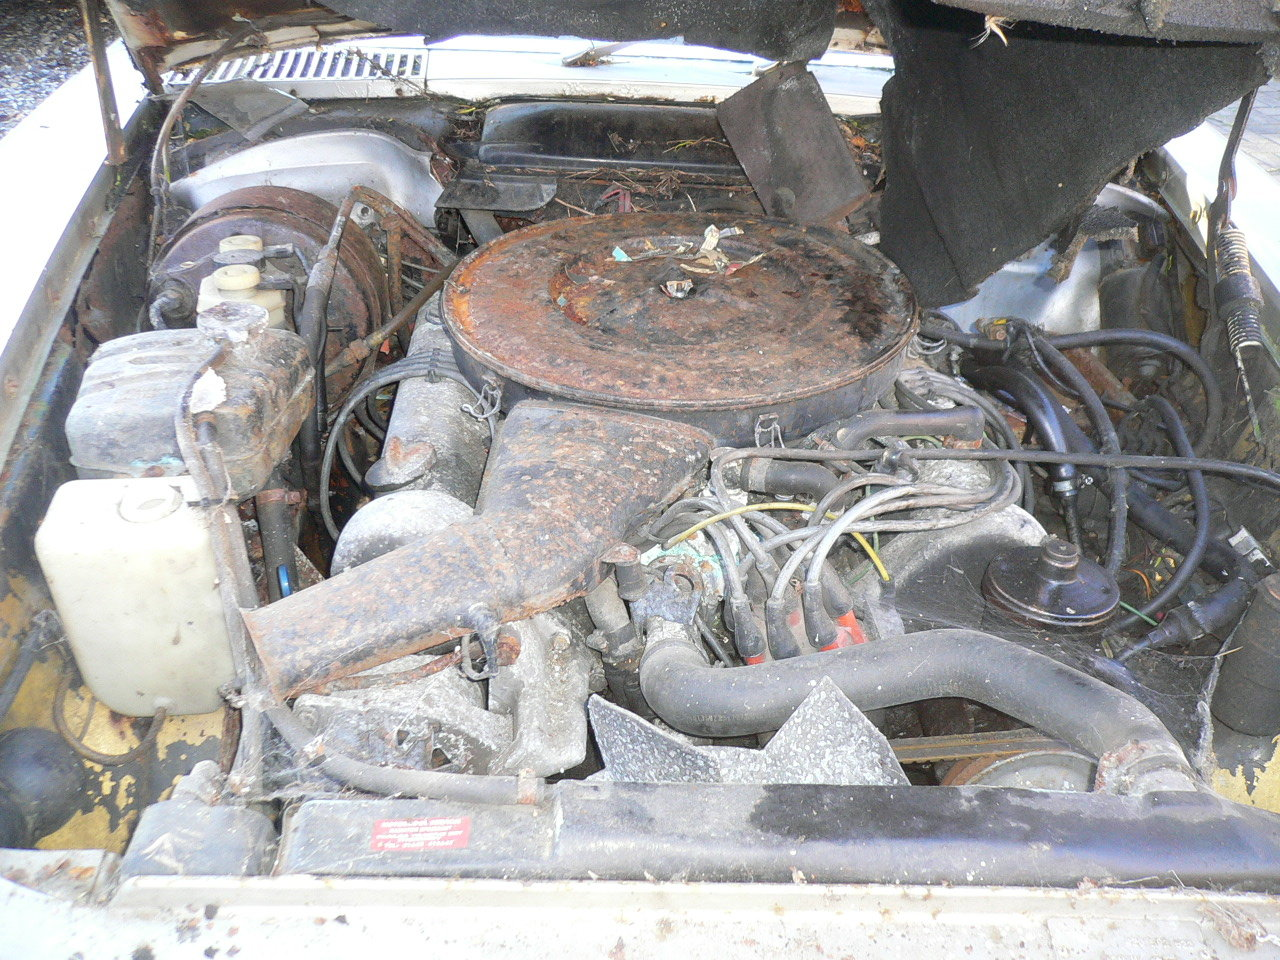 1973 mercedes sl 350 spares or repair  For Sale (picture 5 of 5)